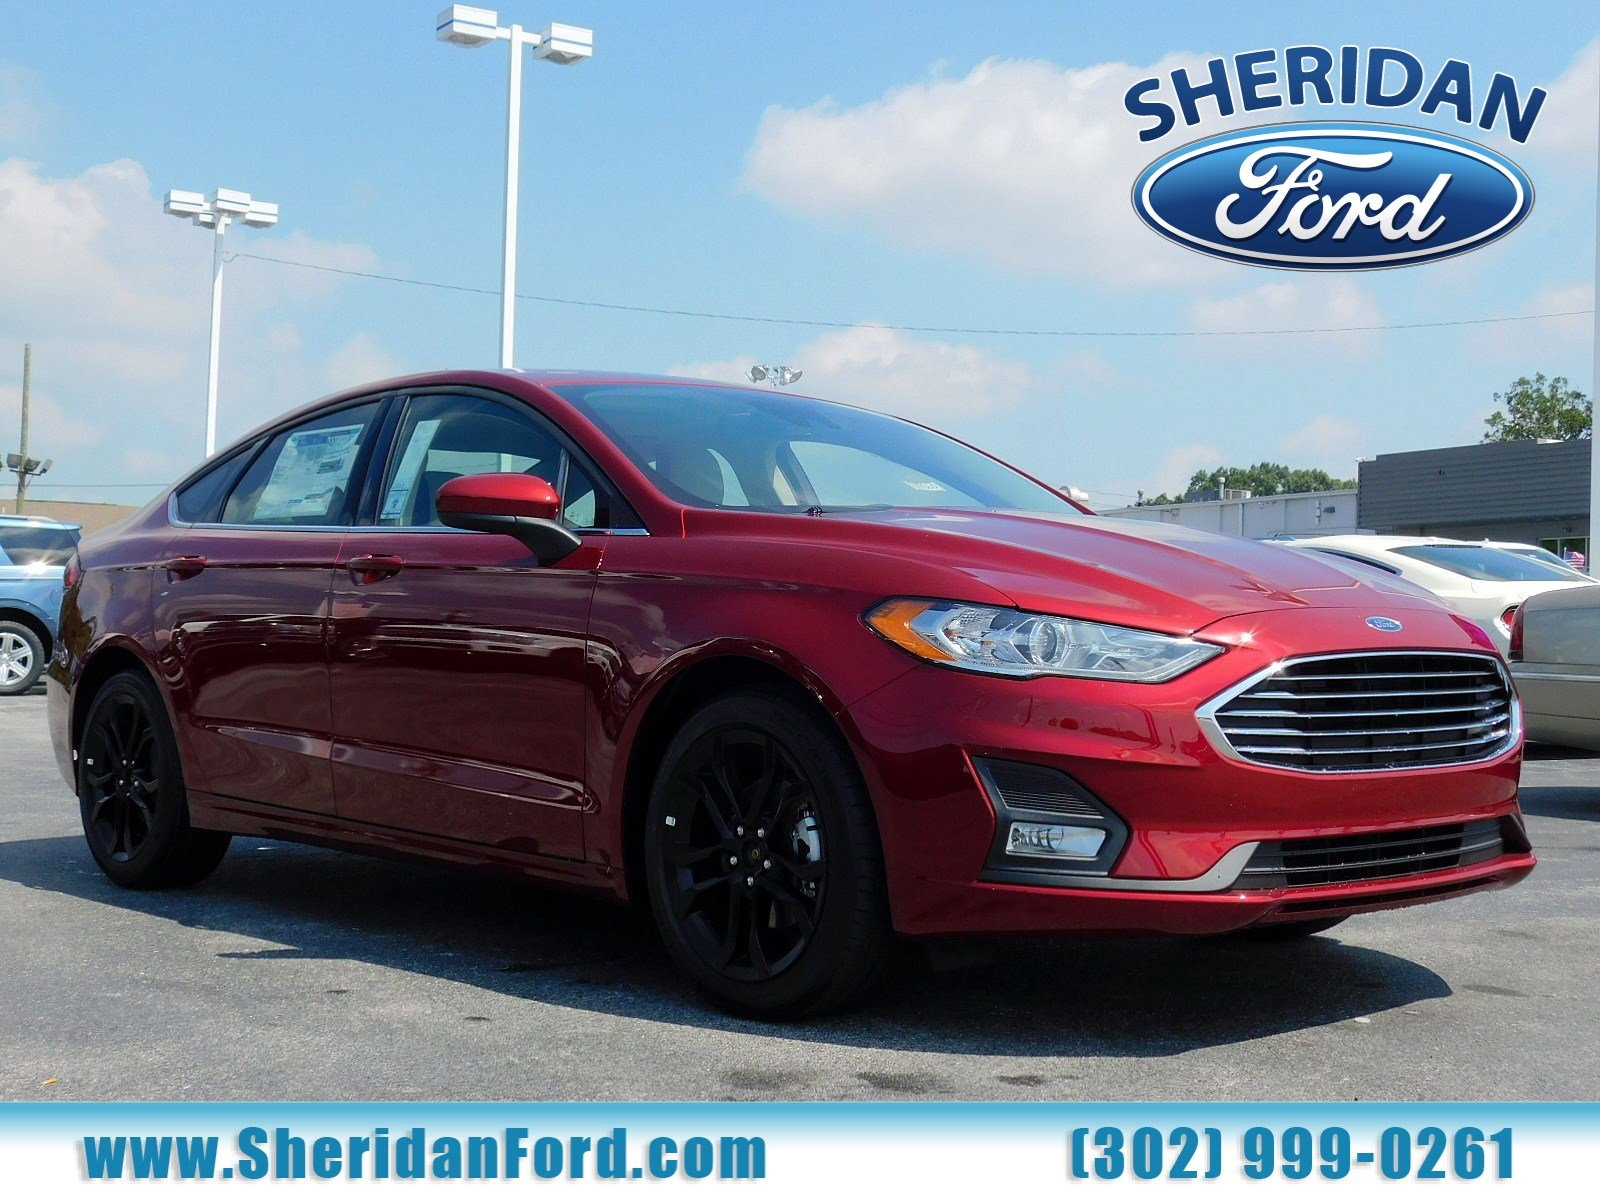 New 2019 Ford Fusion SE FWD 4dr Car